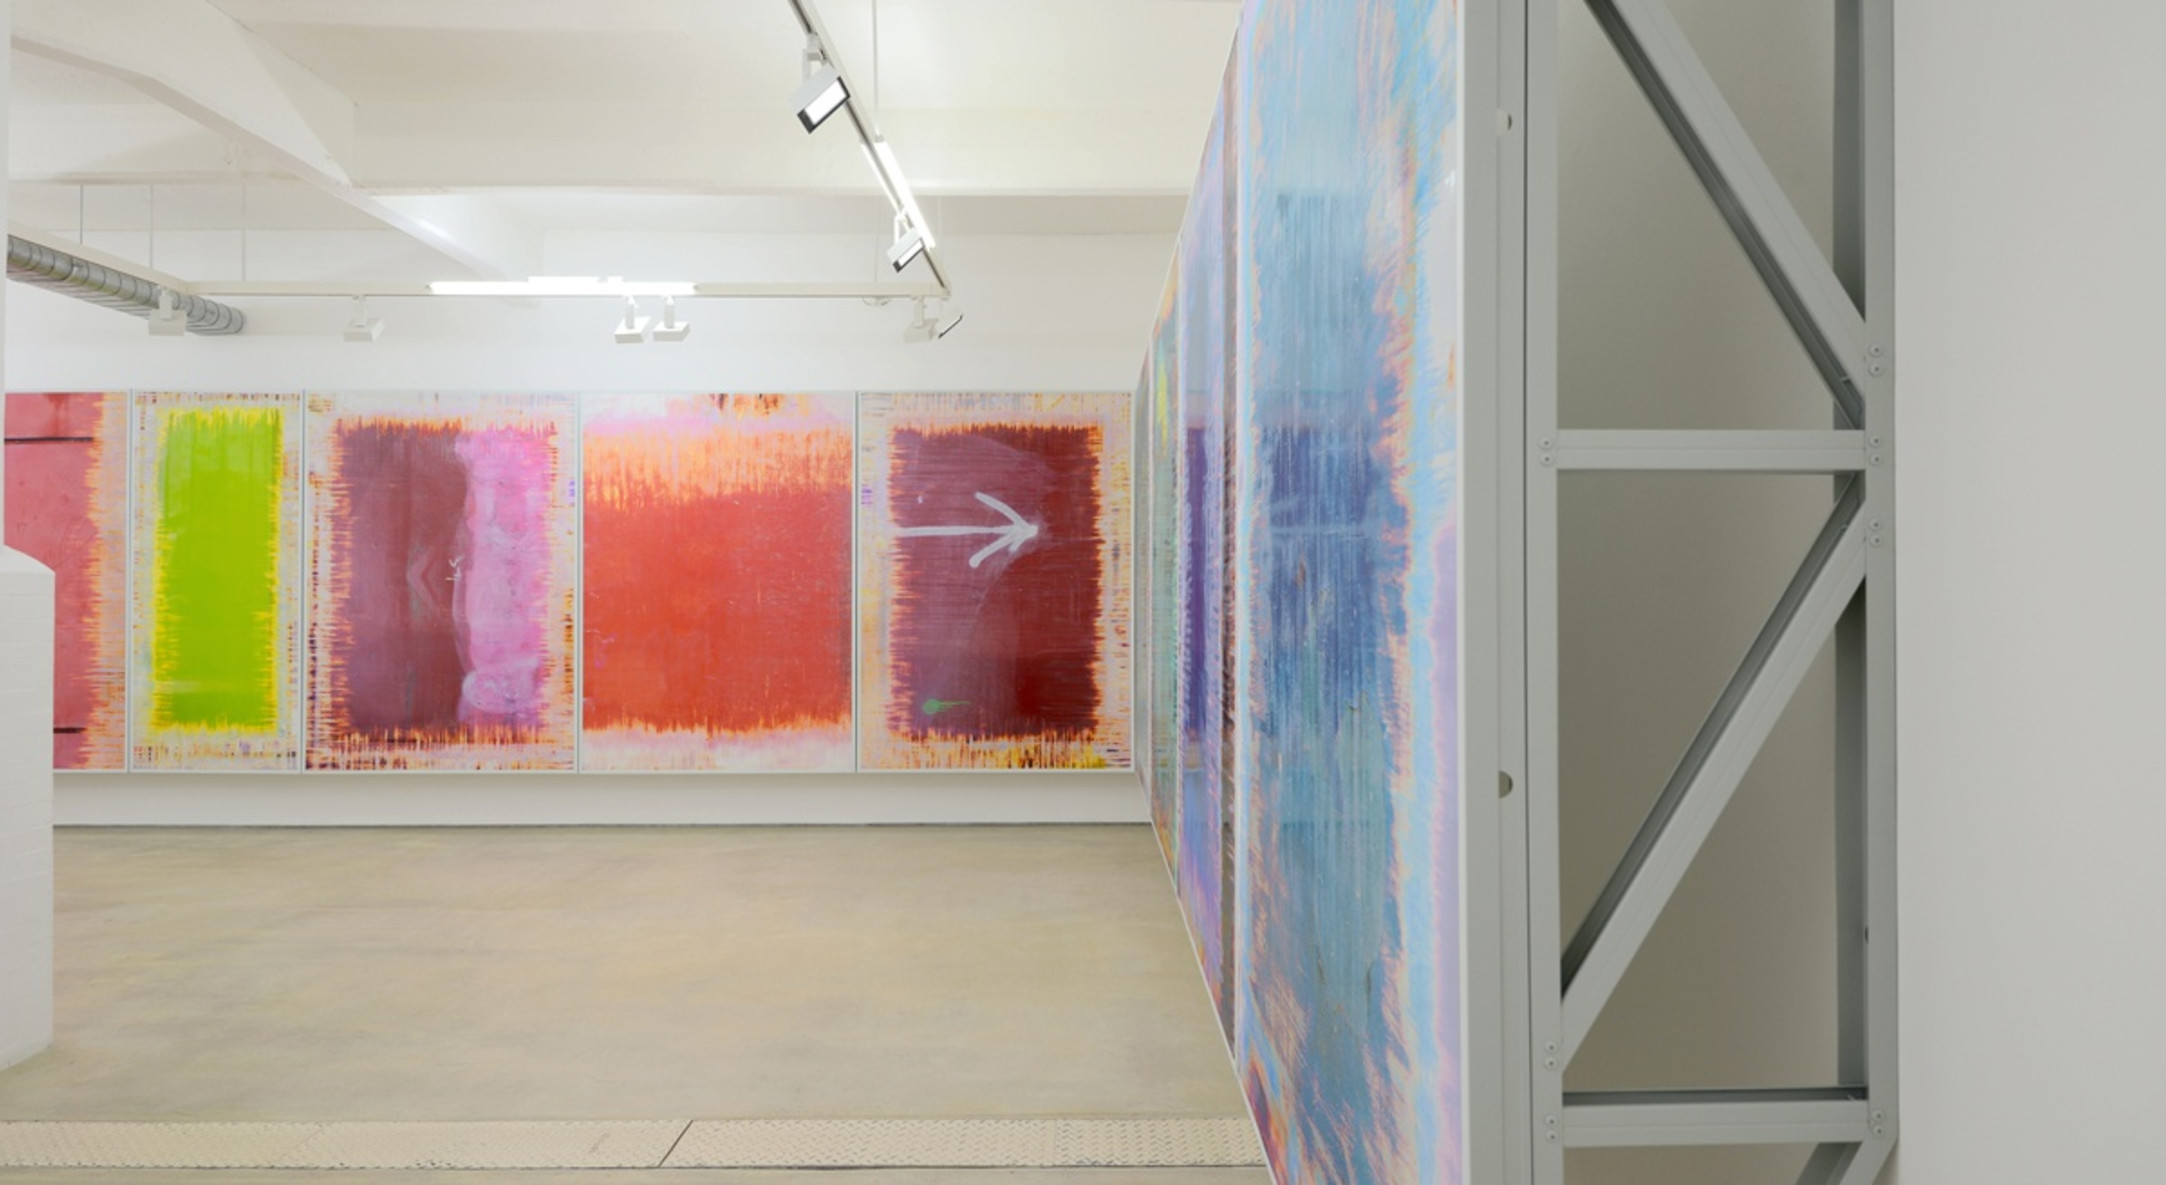 Installation view of Richard Galpin, Elephant (Ten Thousand Revolutions per Minute) at Hales London